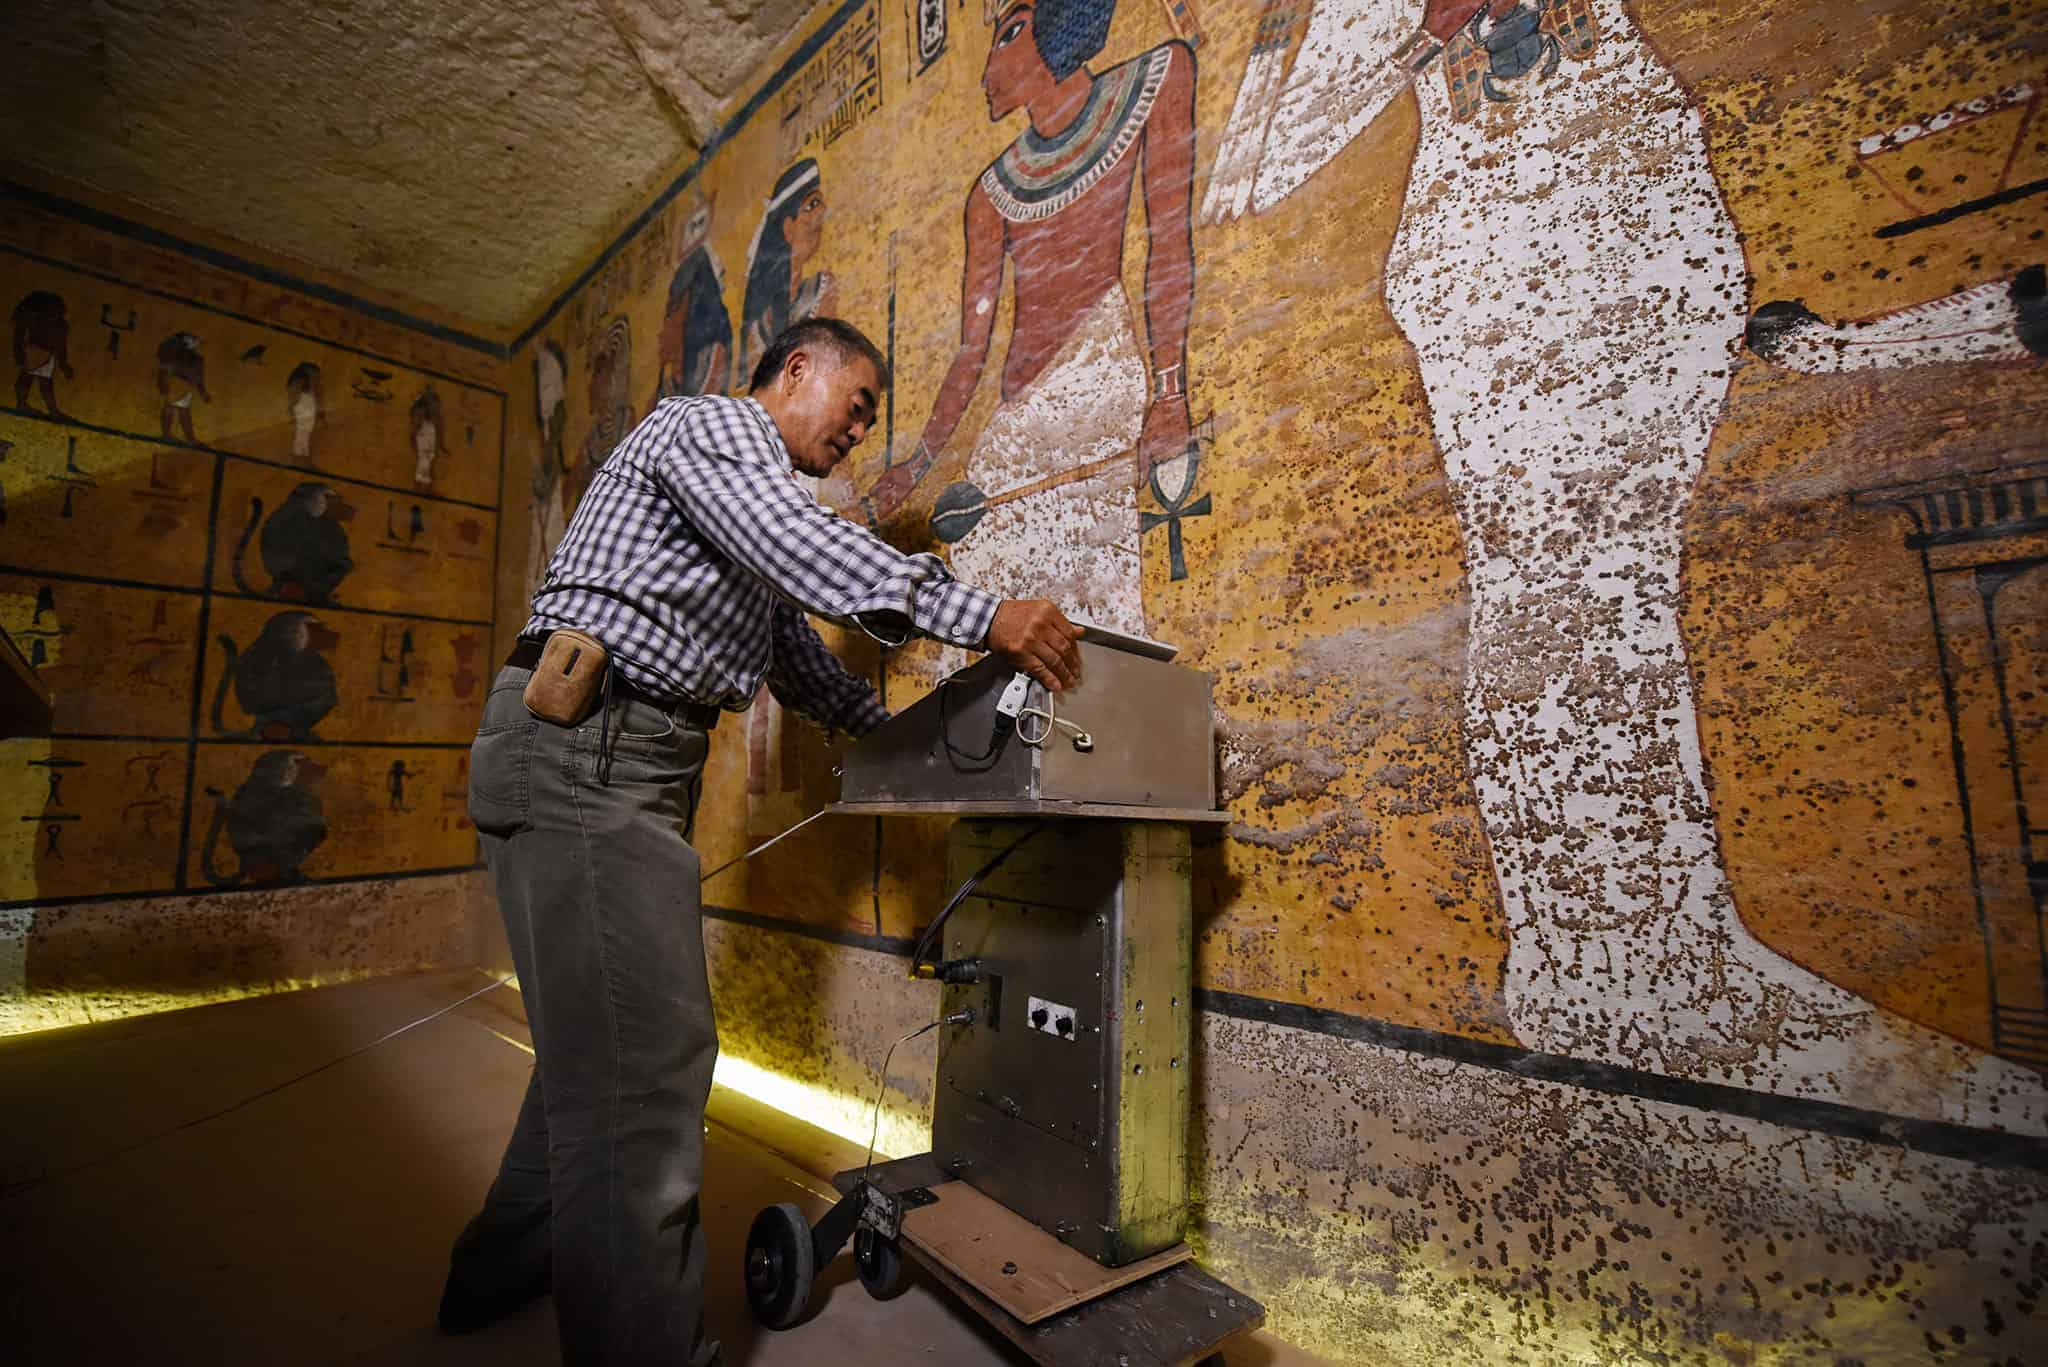 Scans looking for Queen Nefertiti inside King Tut's tomb